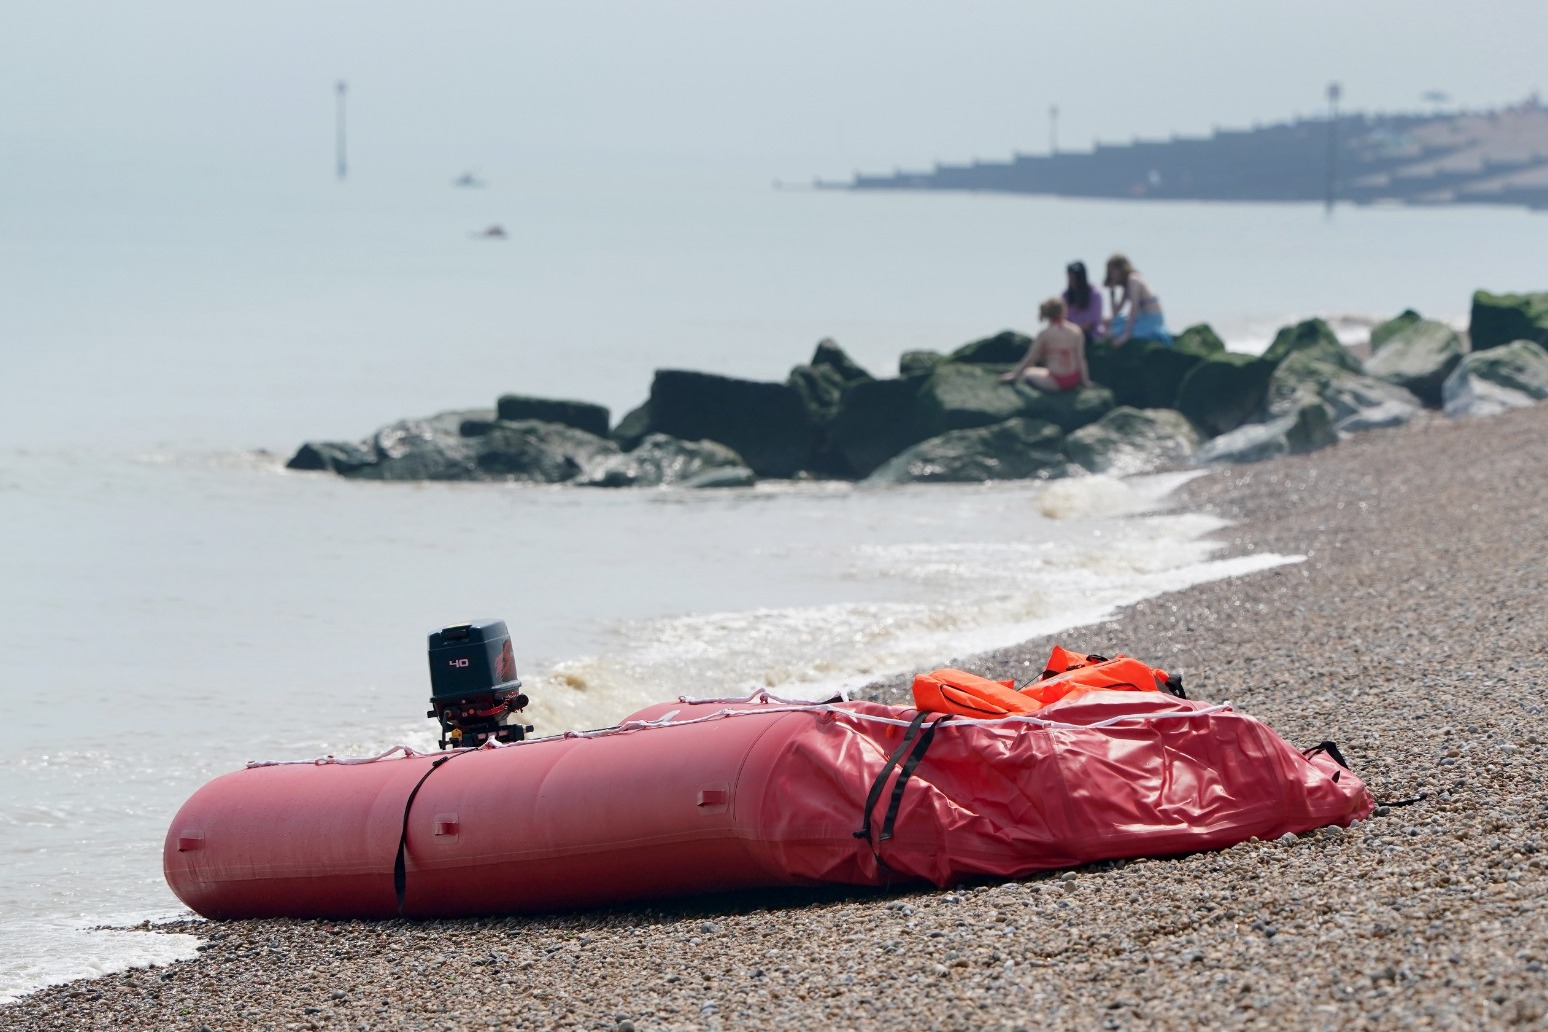 Migrants intercepted as attempted English Channel crossings continue.